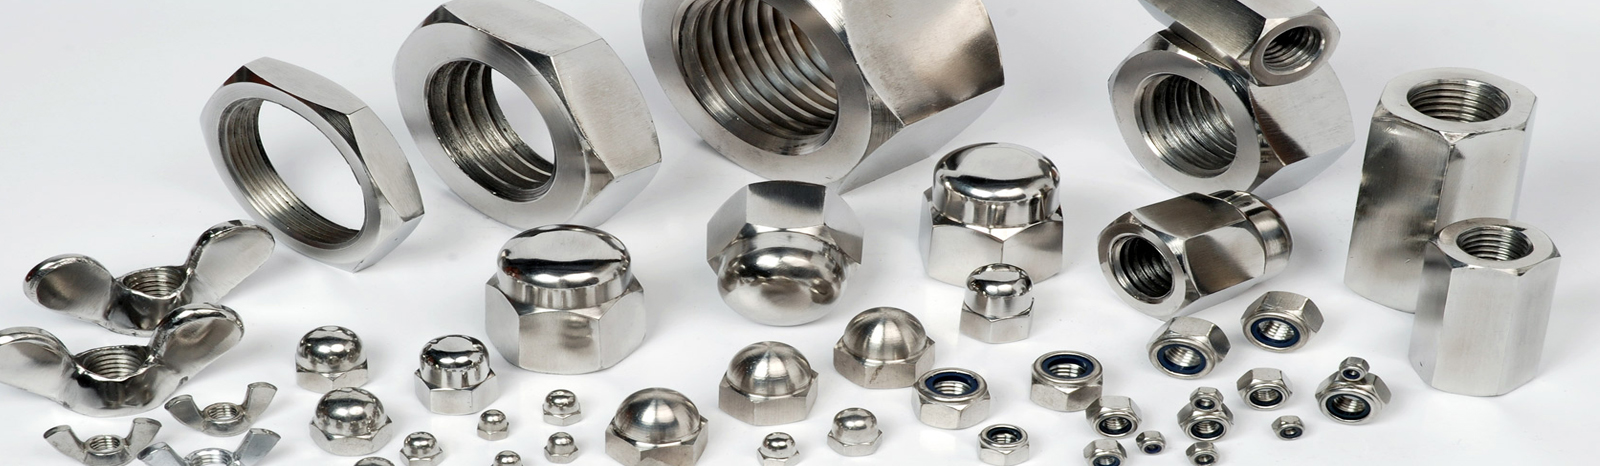 Alloy Steel Fasteners Manufacturer Exporter Suppliers